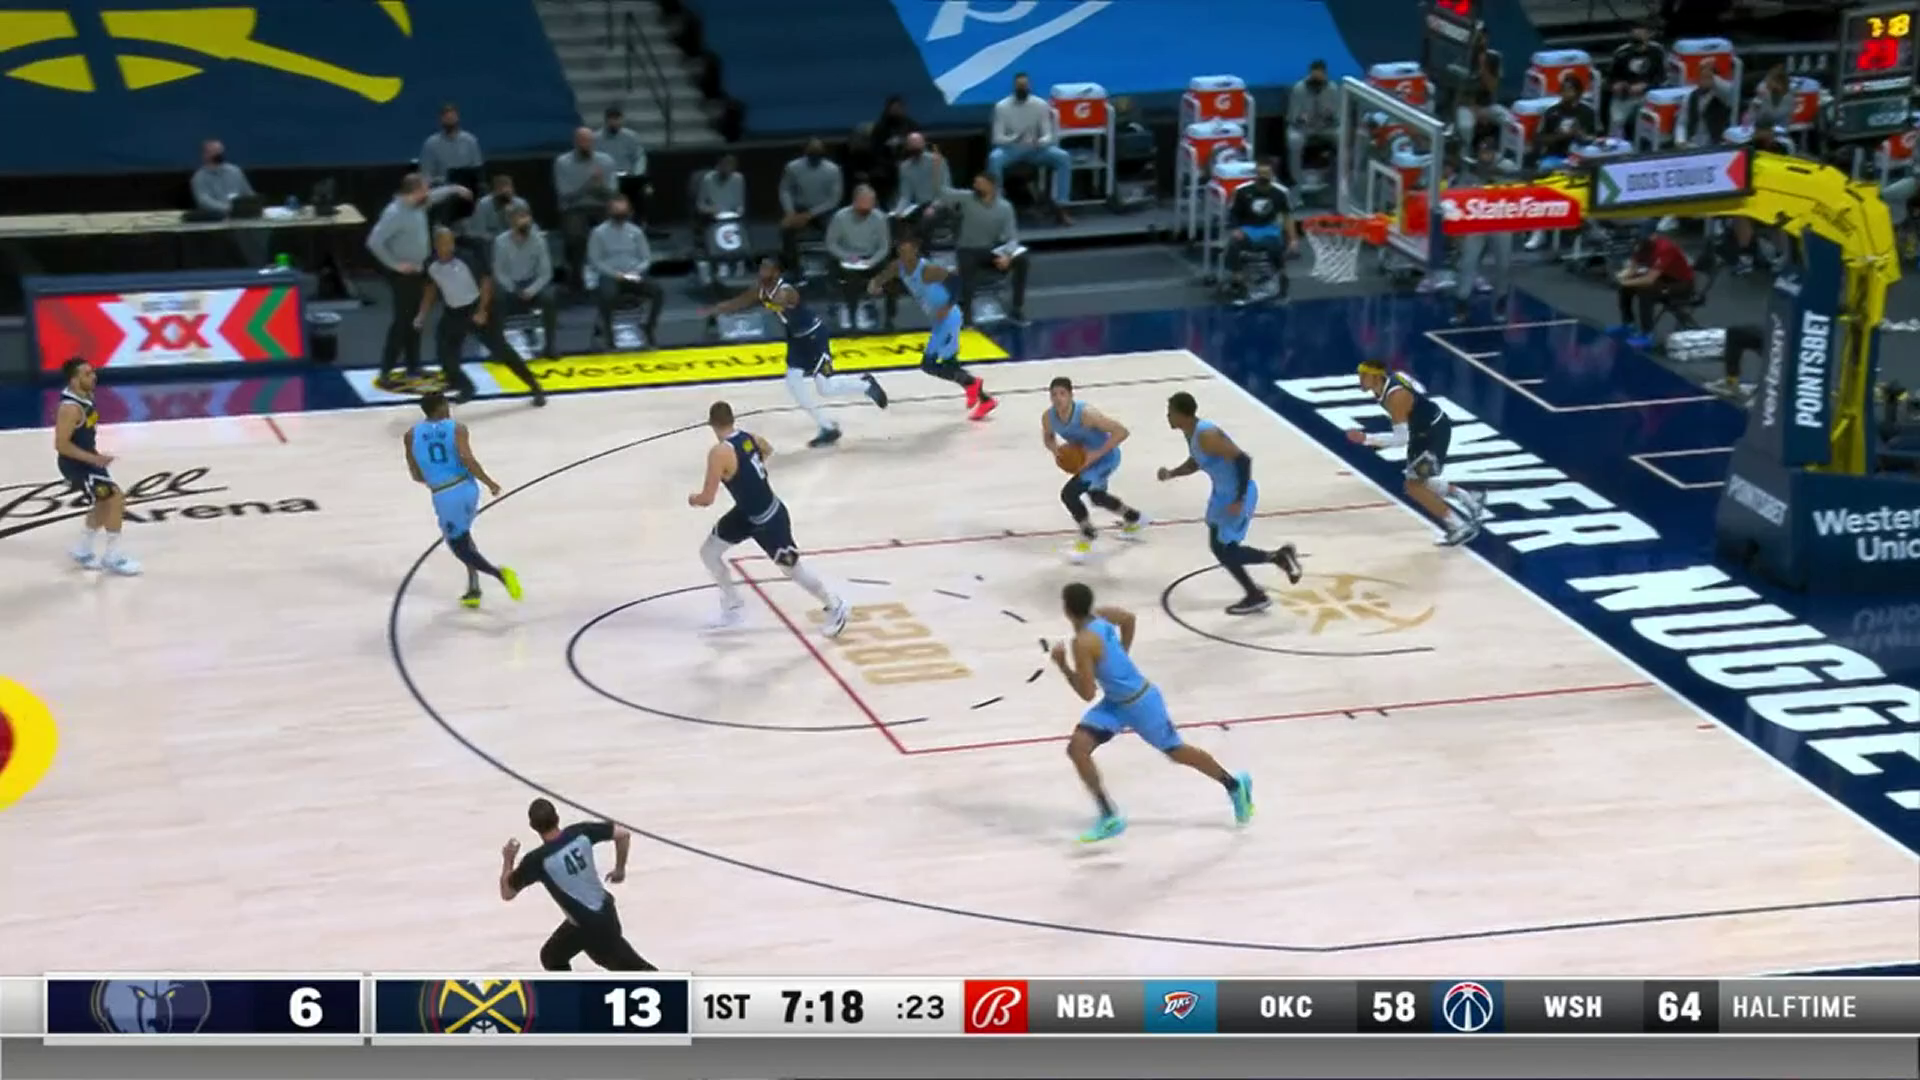 Kyle Anderson with the fast break finish